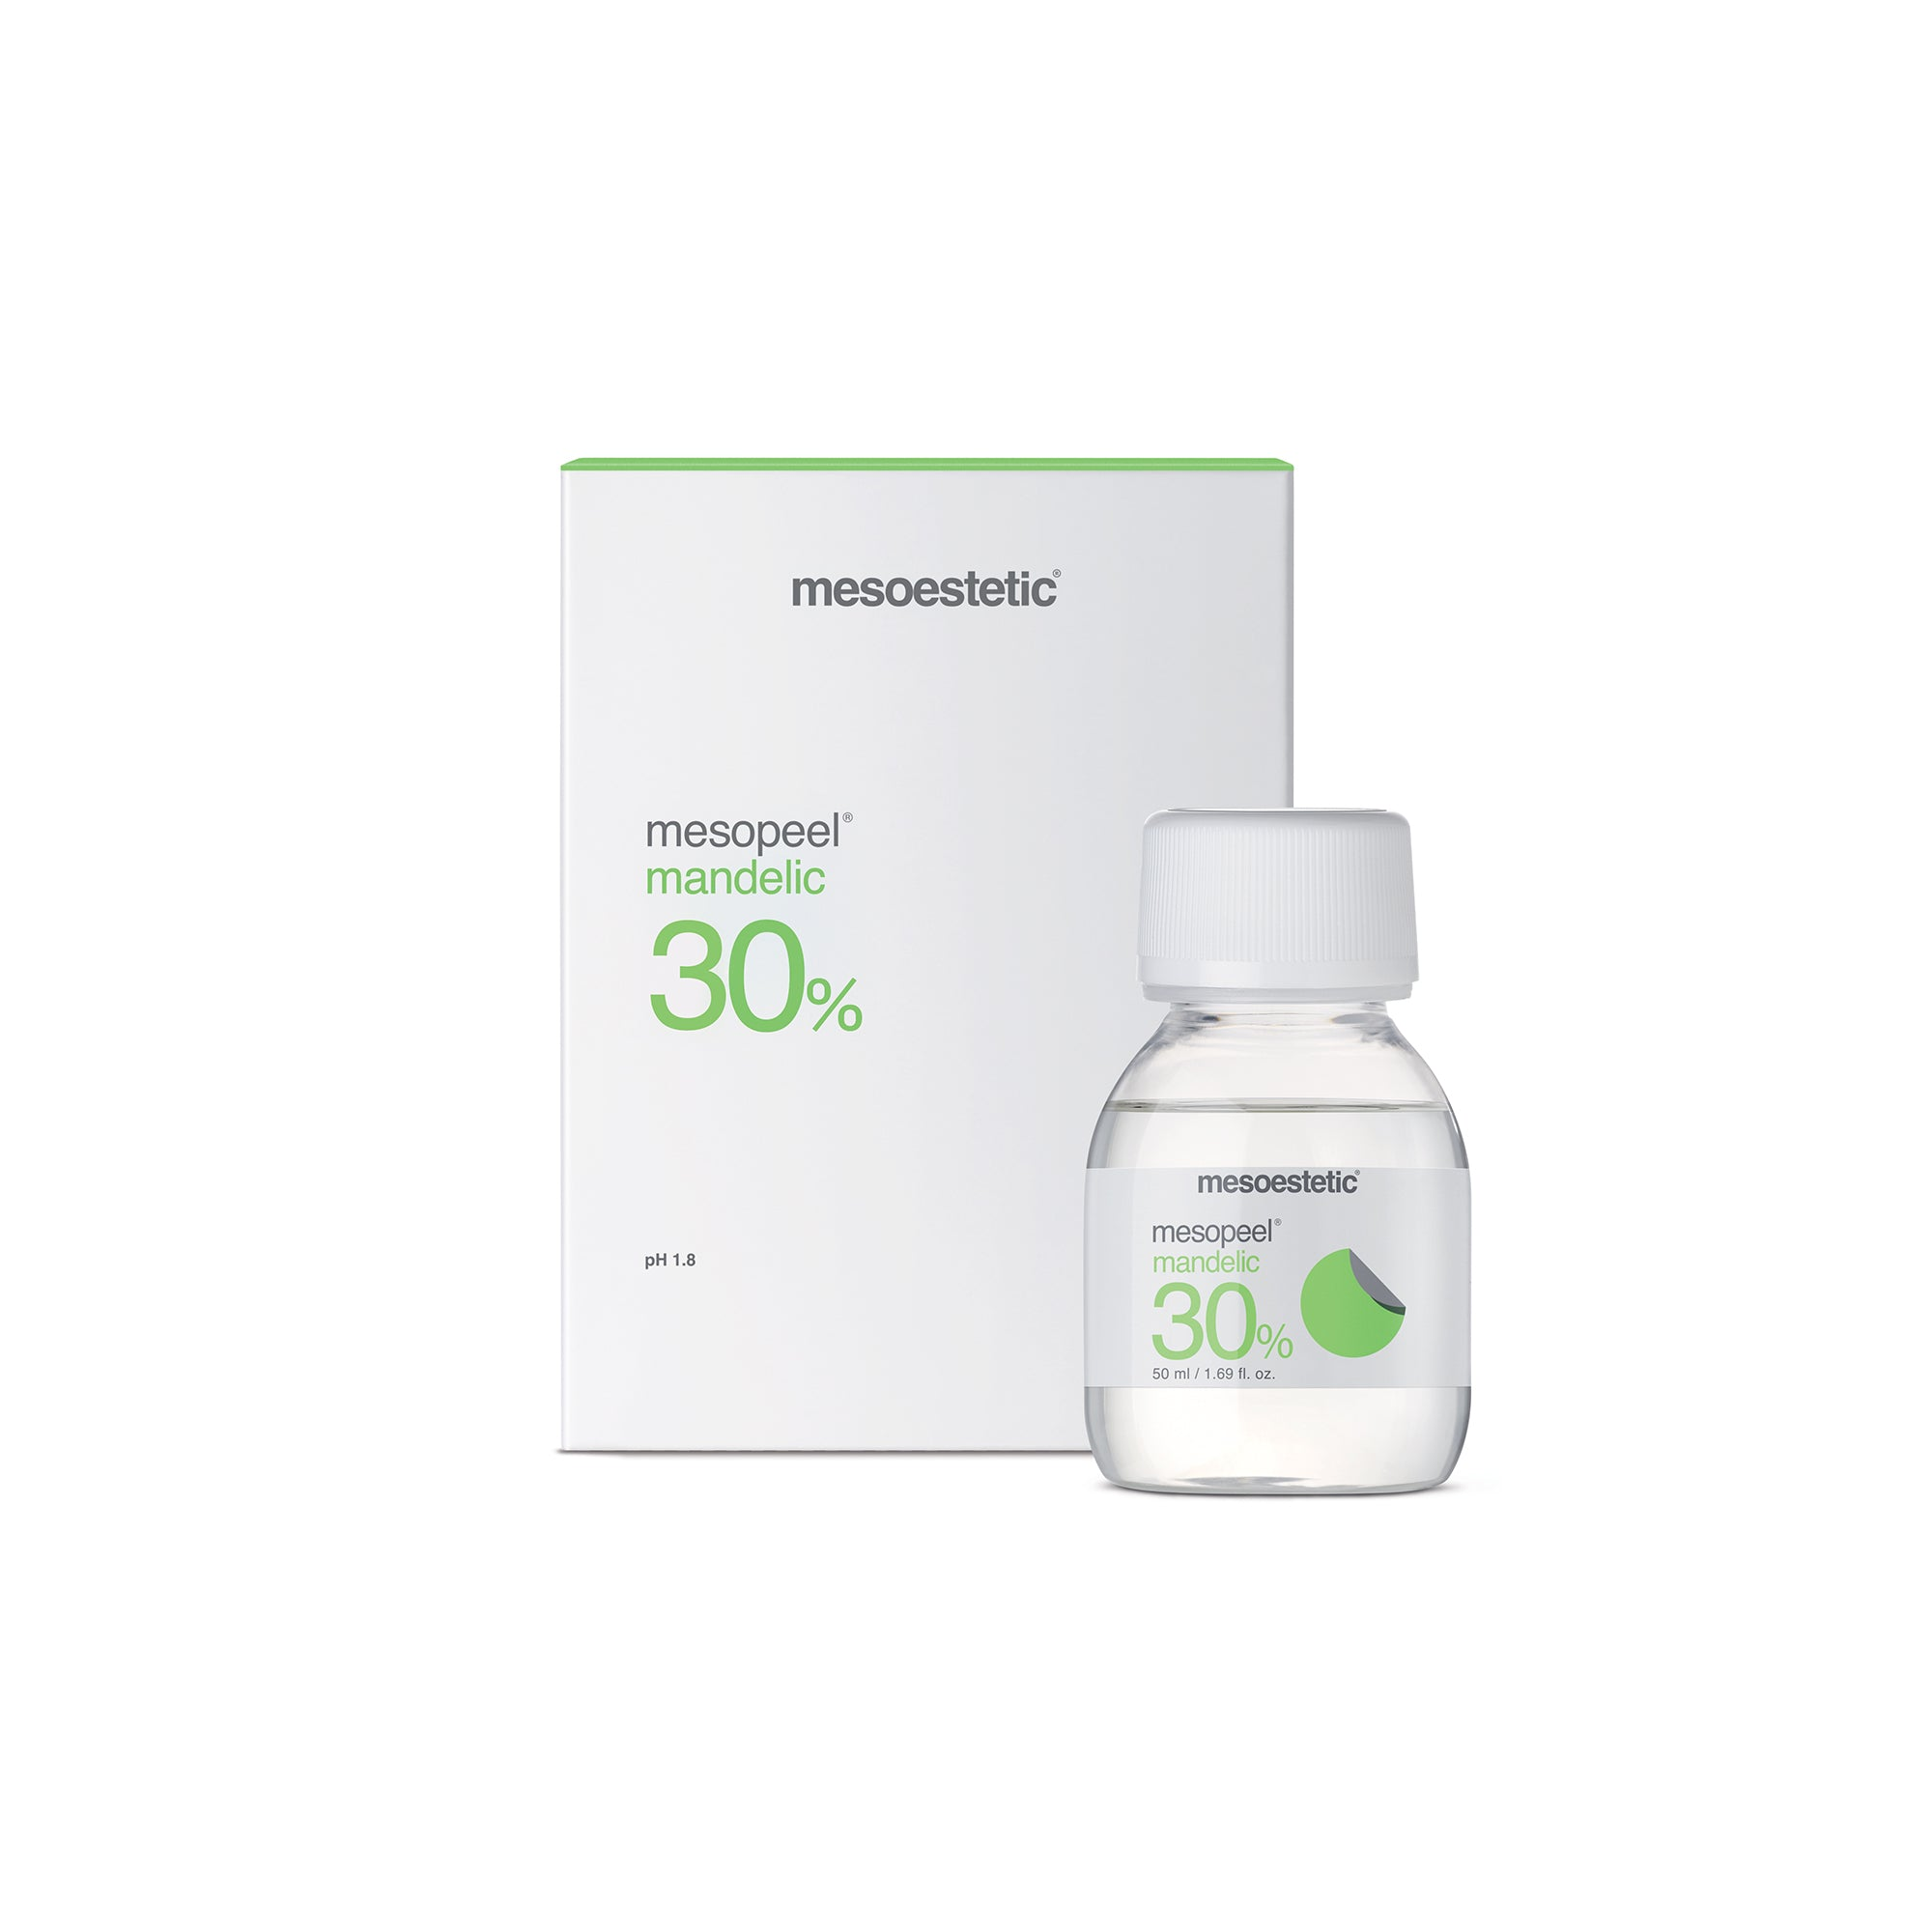 mesopeel mandelic 30% - 50 ml + 1 neutralizing spray